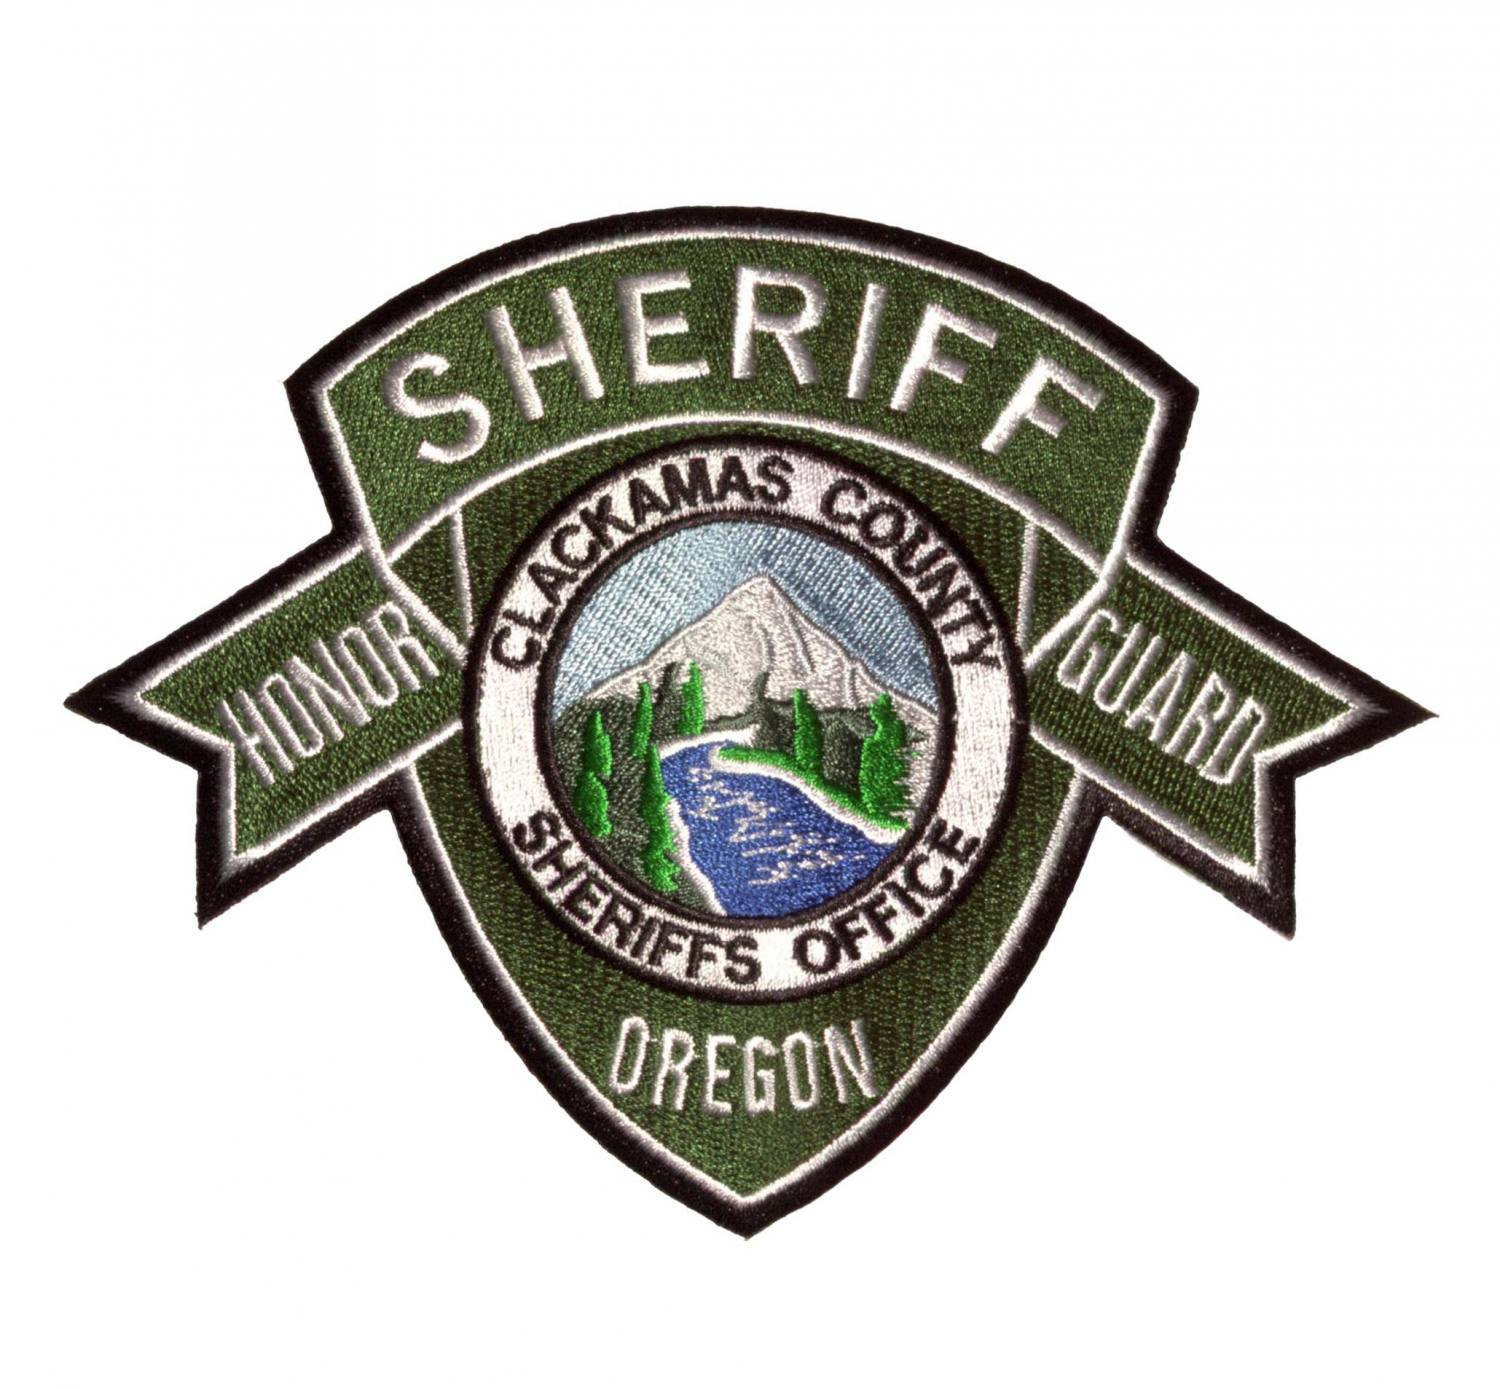 E17237 Clackamas County Sheriff (OR) | The Emblem Authority